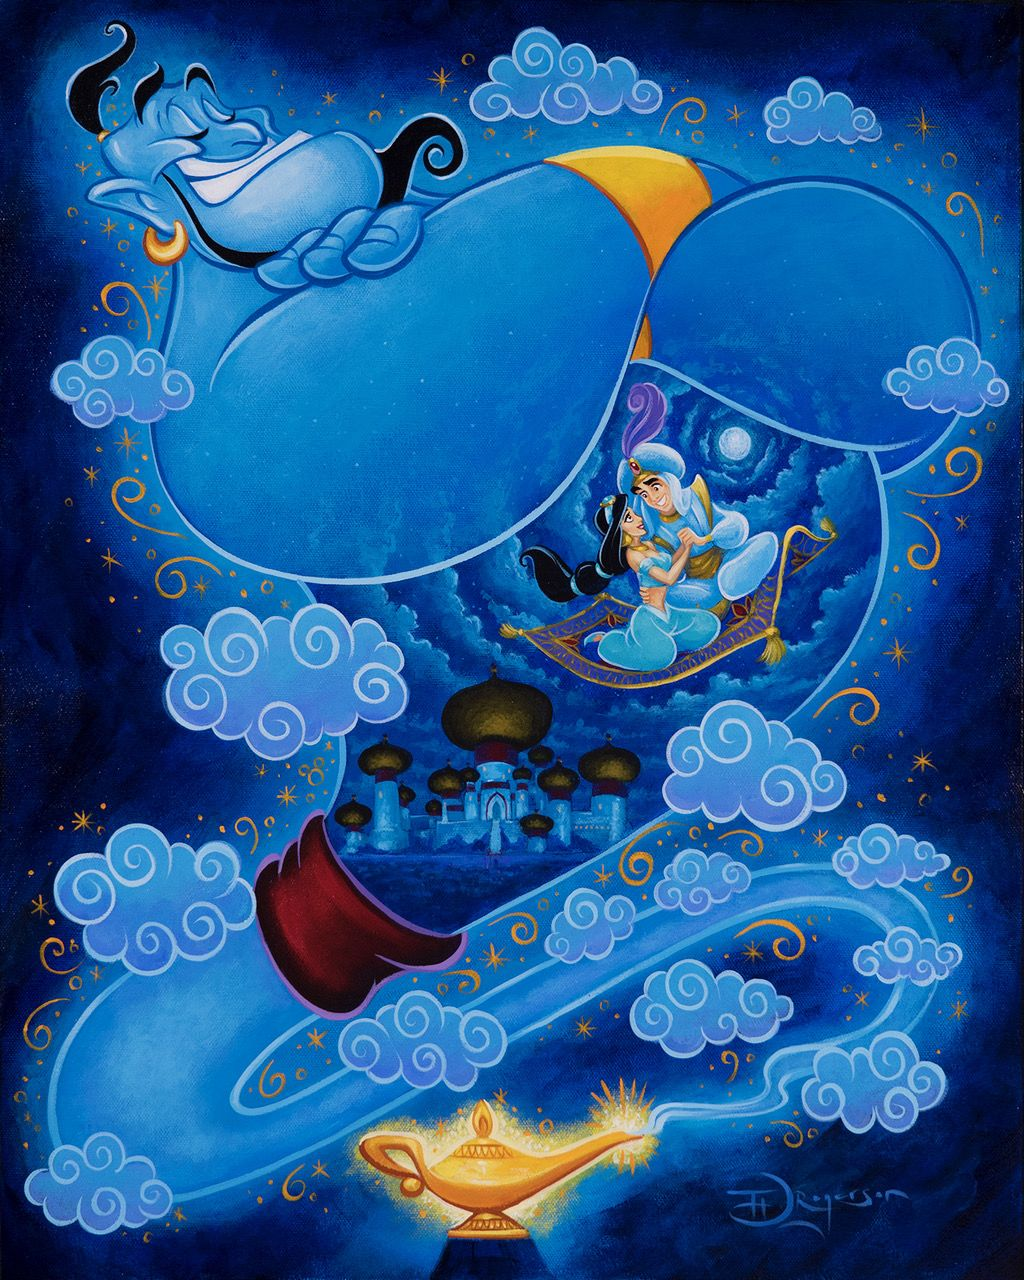 Genie with the Magic Lamp of Aladdin and Princess Jasmine on the Magic Carpet